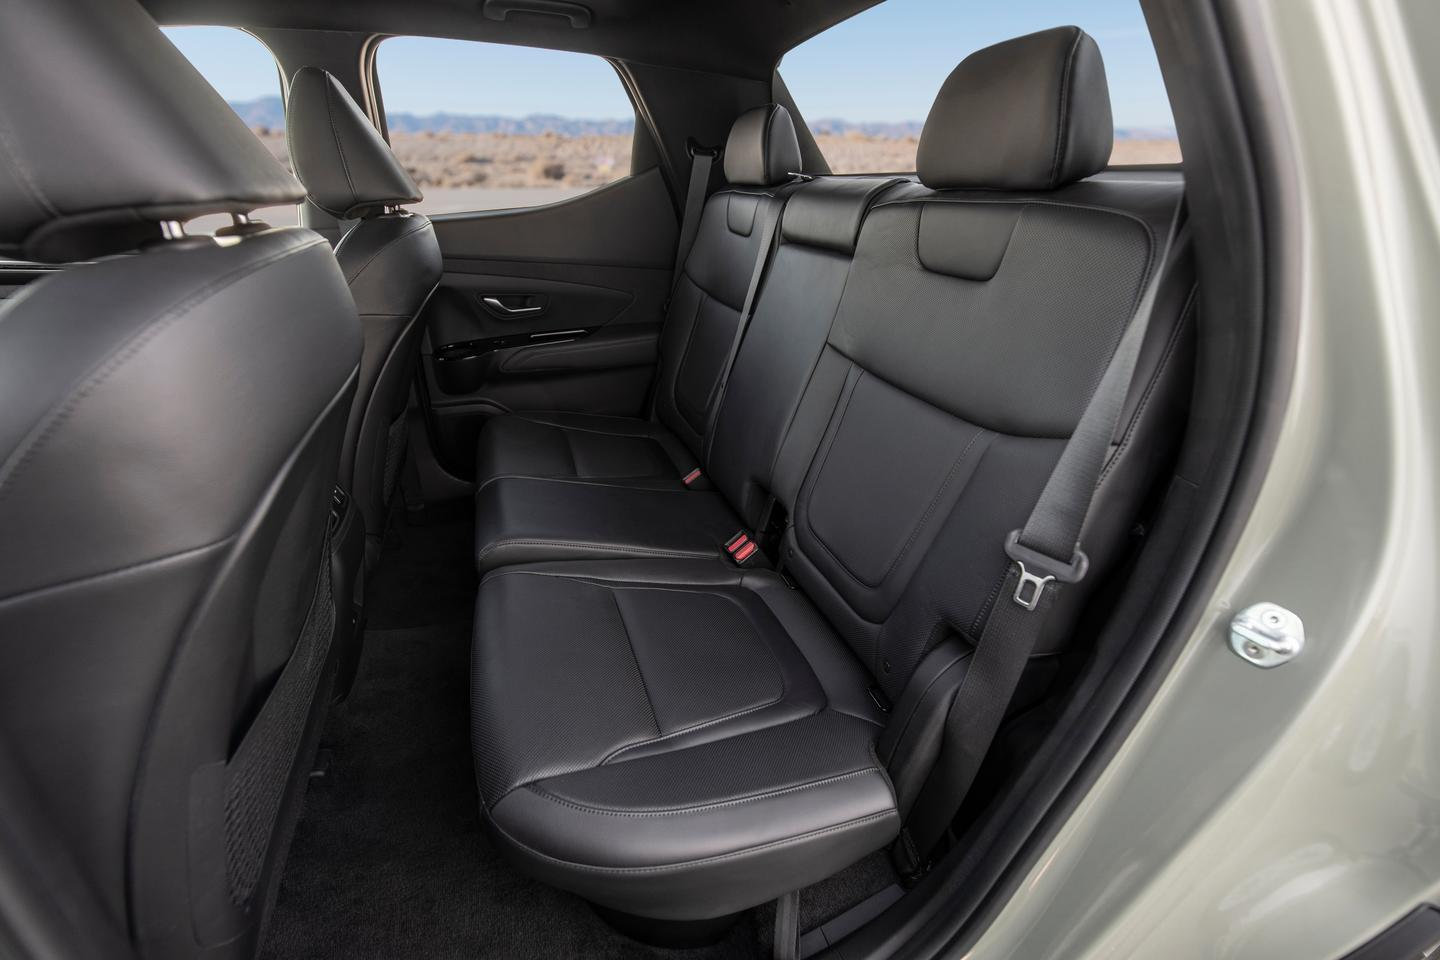 The seating in the back of the Santa Cruz appears small, akin to a compact vehicle